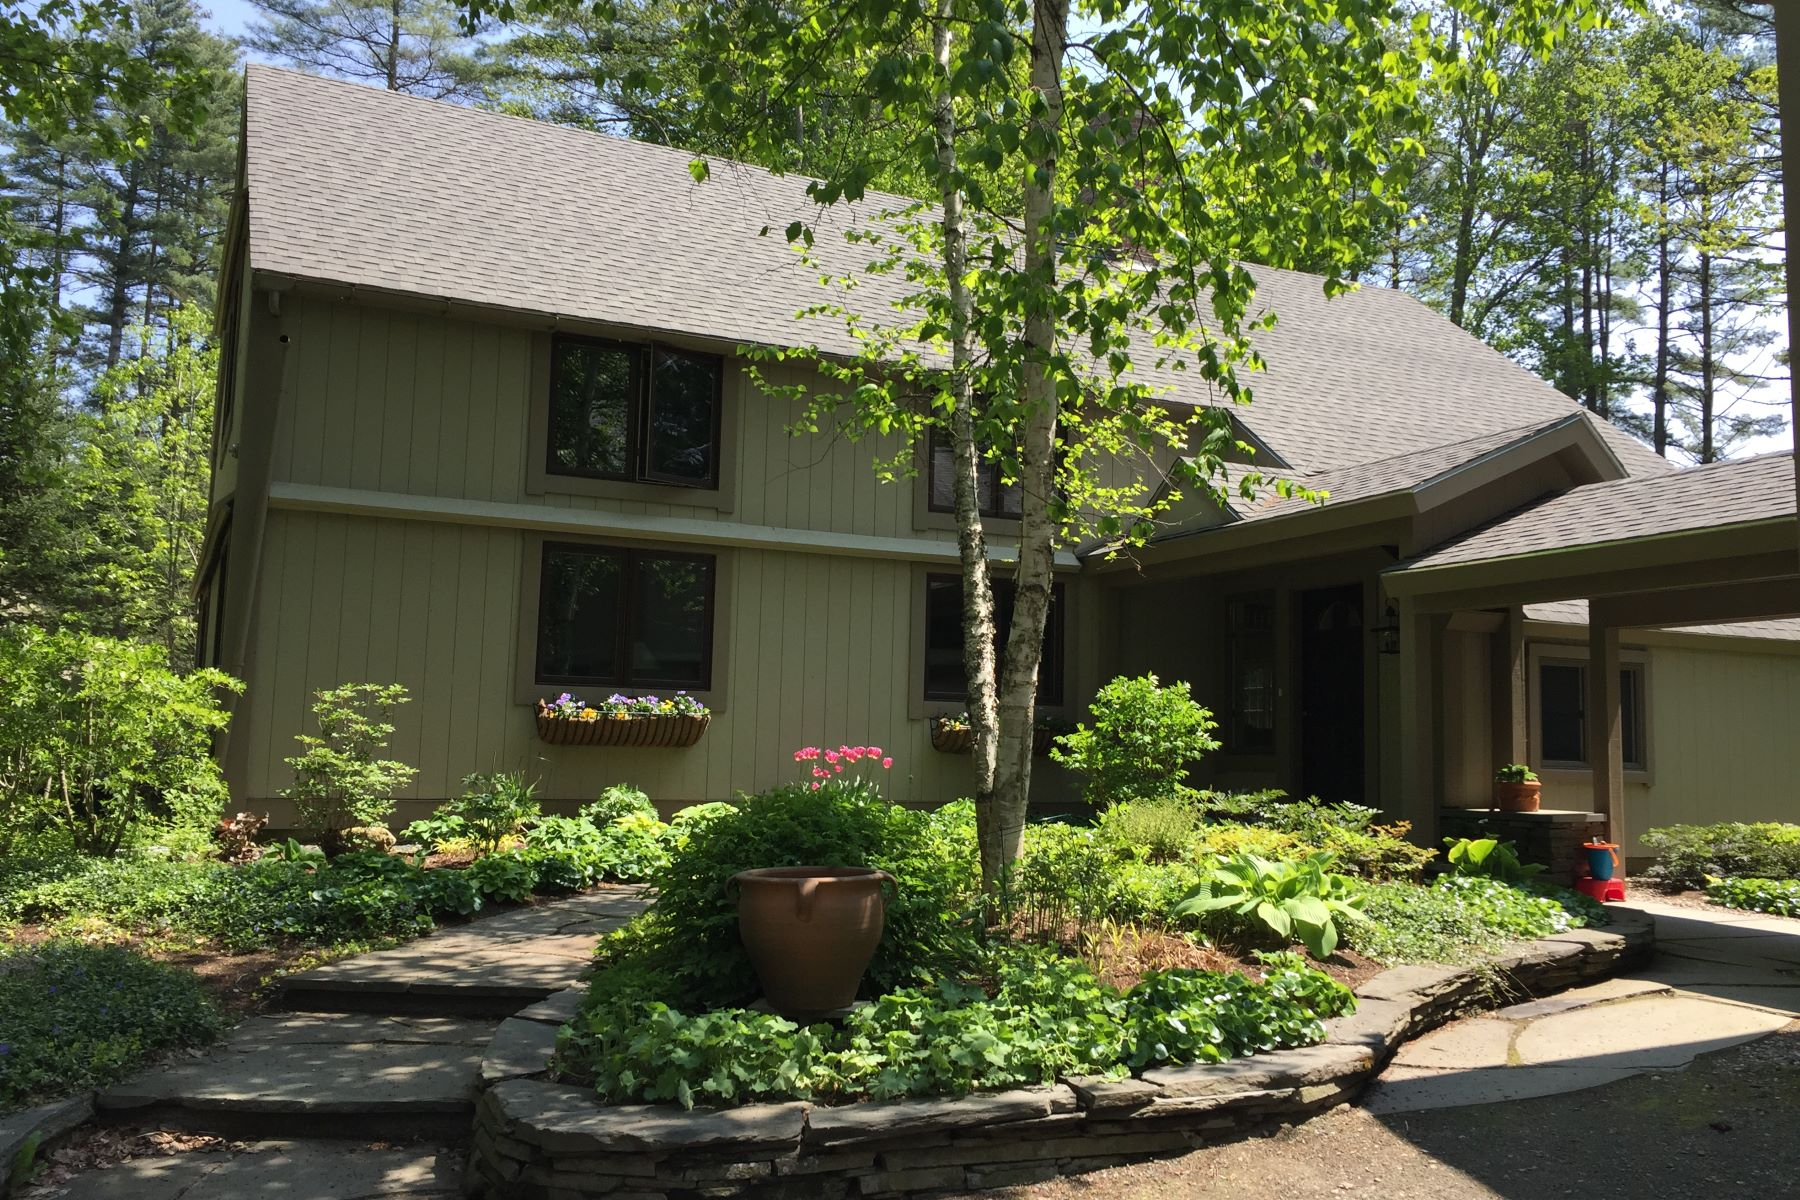 Single Family Home for Sale at Three Bedroom Contemporary in Eastman 38 Fairway Dr Grantham, New Hampshire 03753 United States